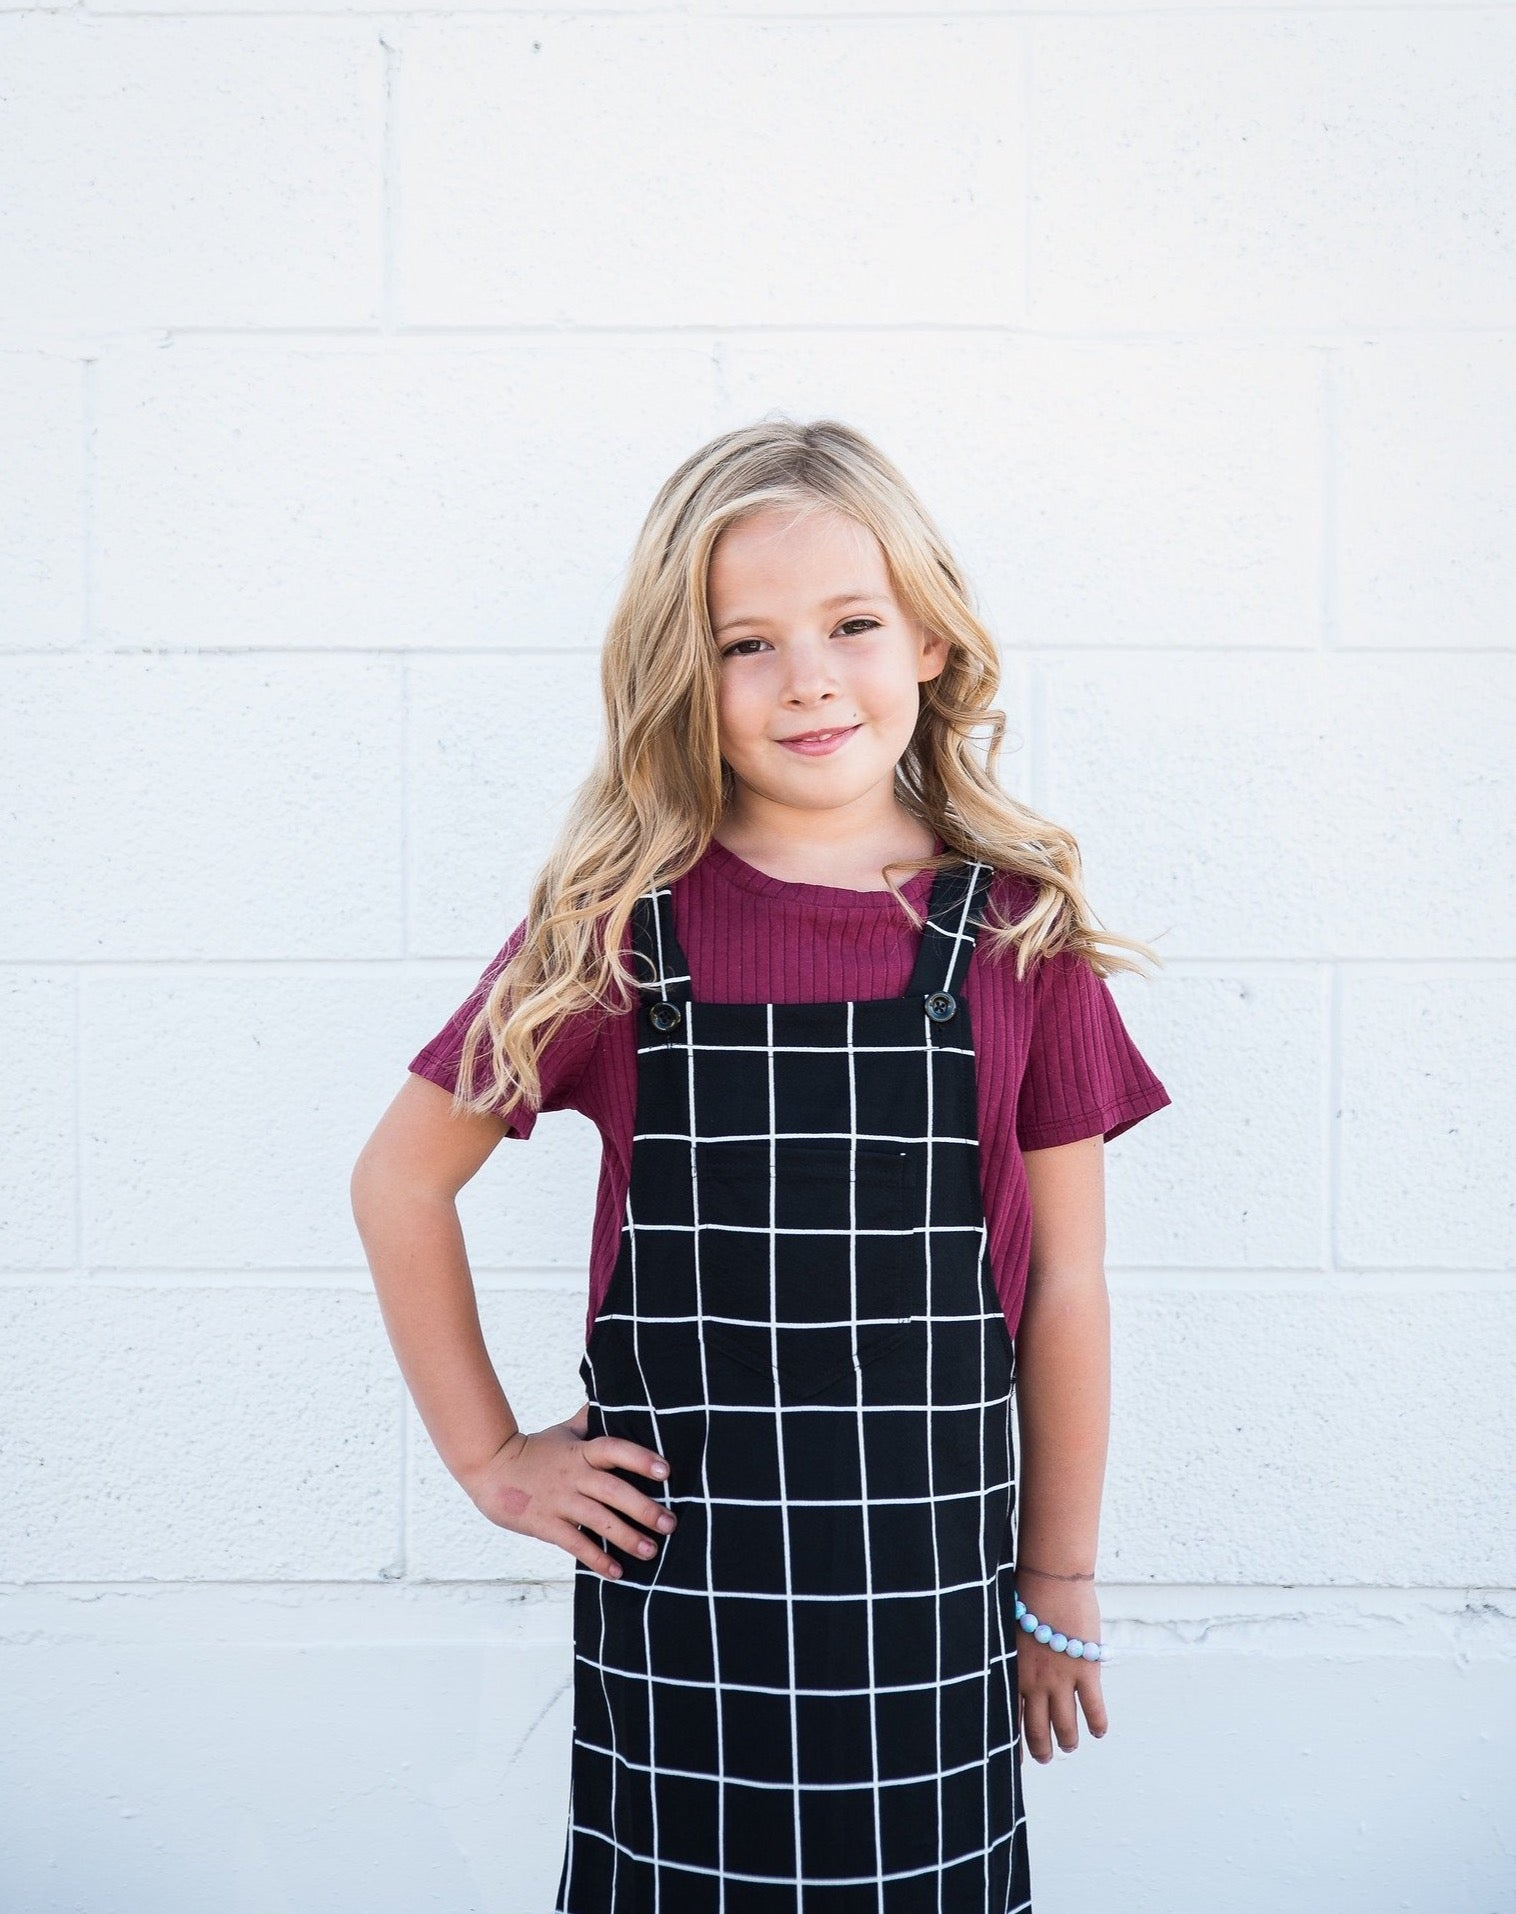 Bib Pocket Overall dress with classic windowpane checks.  This jumper is a customer favorite! Pair it with a white or yellow top, or the burgundy tee featured, and you have a classic outfit that you'll love for years to come.